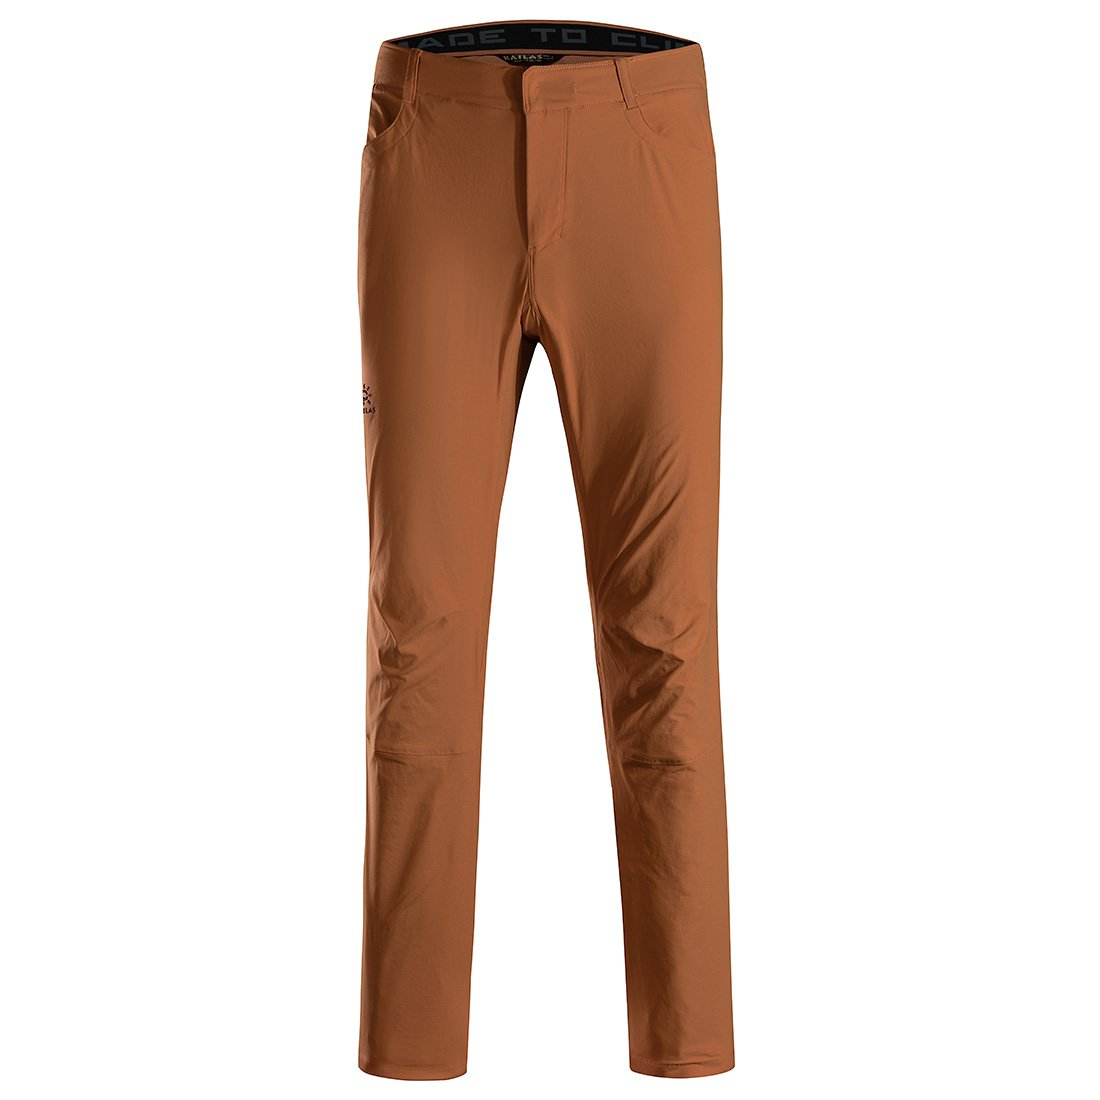 KAILAS Men's 9A Quick Dry Pants Lightweight Classic Rock Climbing Bouldering